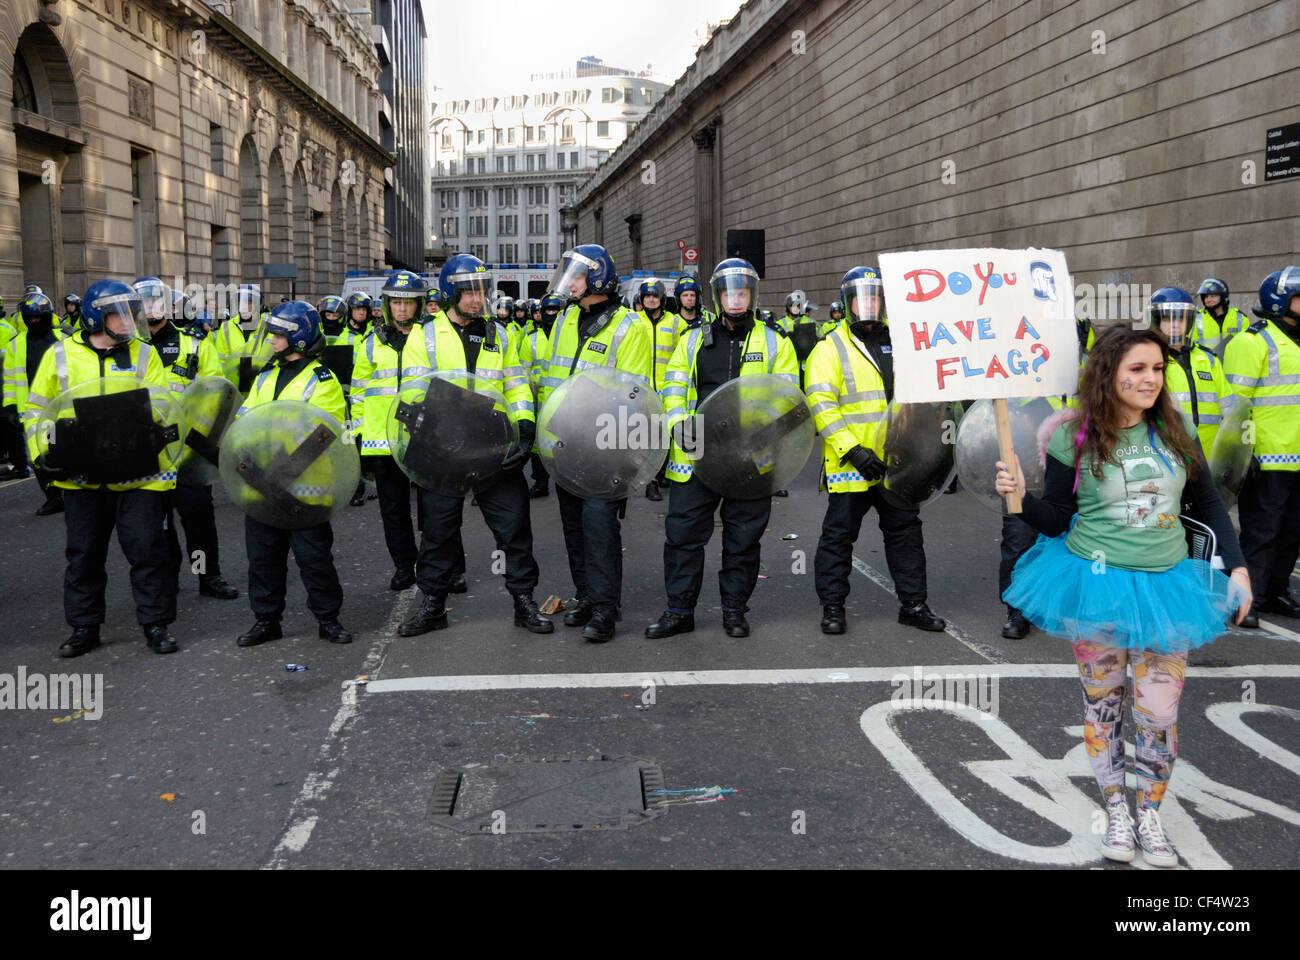 A young female protestor wearing a tutu and holding up a placard in front of a line of riot police during the G20 - Stock Image